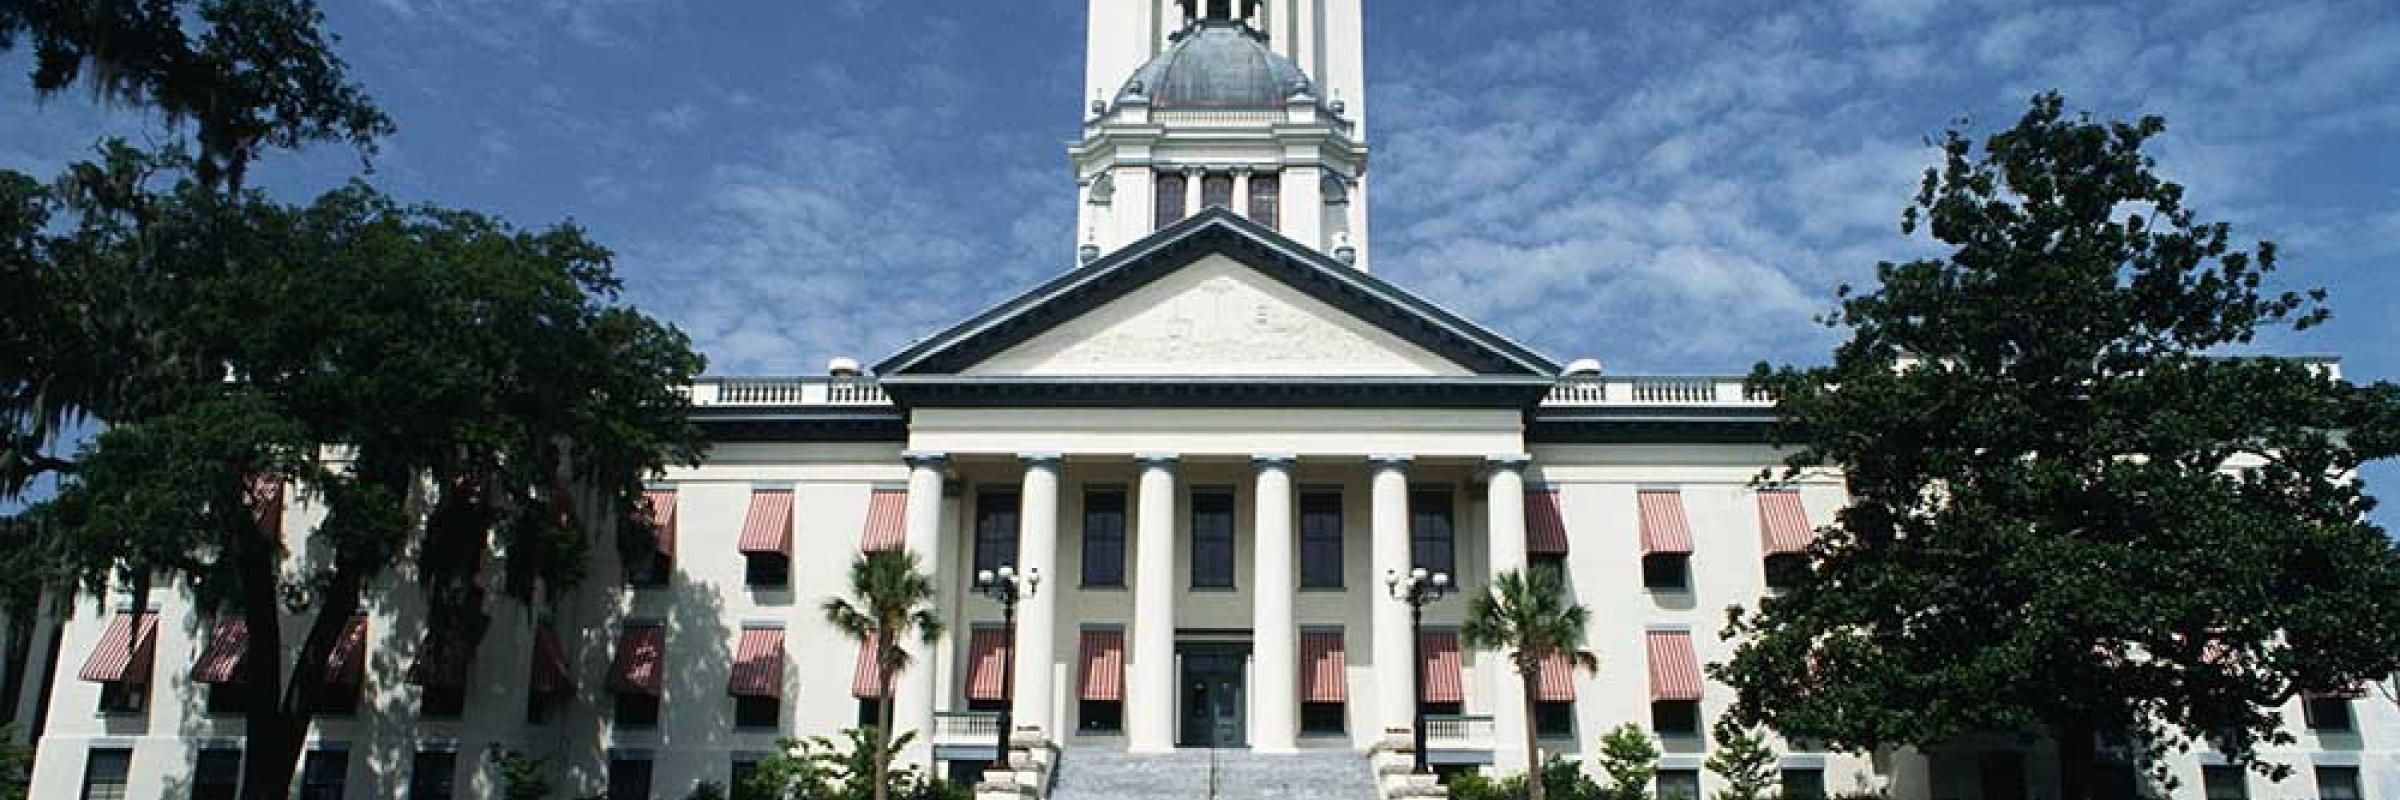 Tallahassee capital building